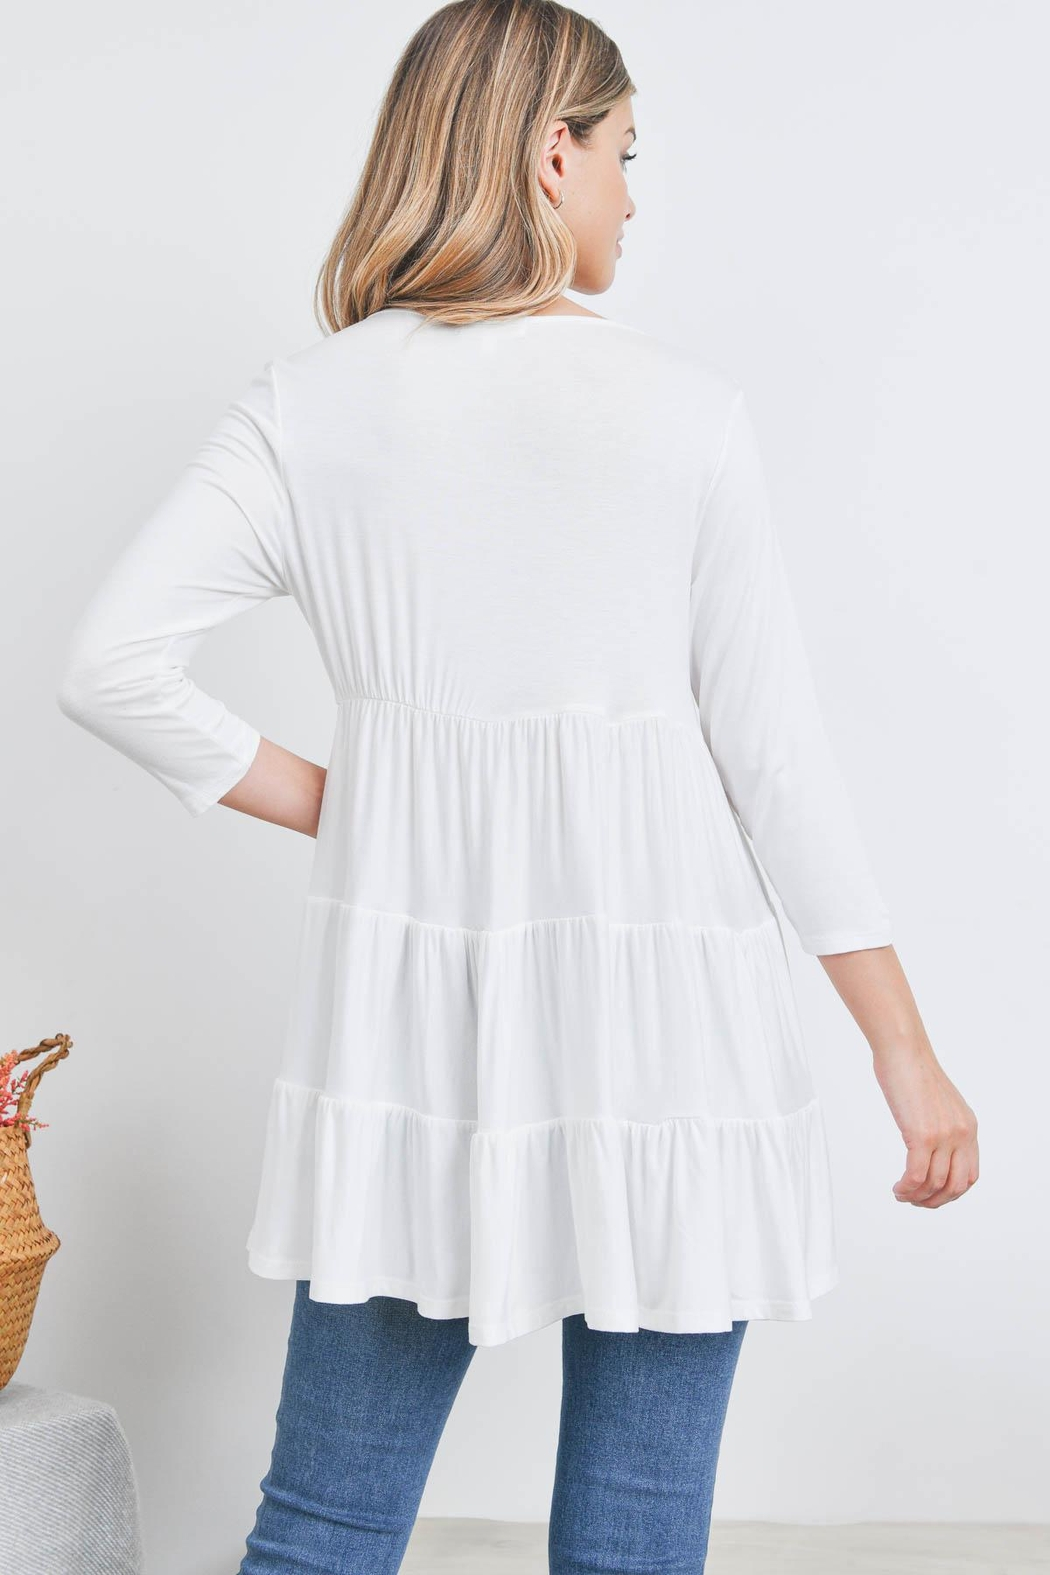 Riah Fashion Quarter-Sleeve-Solid-Tiered-Top - Front Full Image